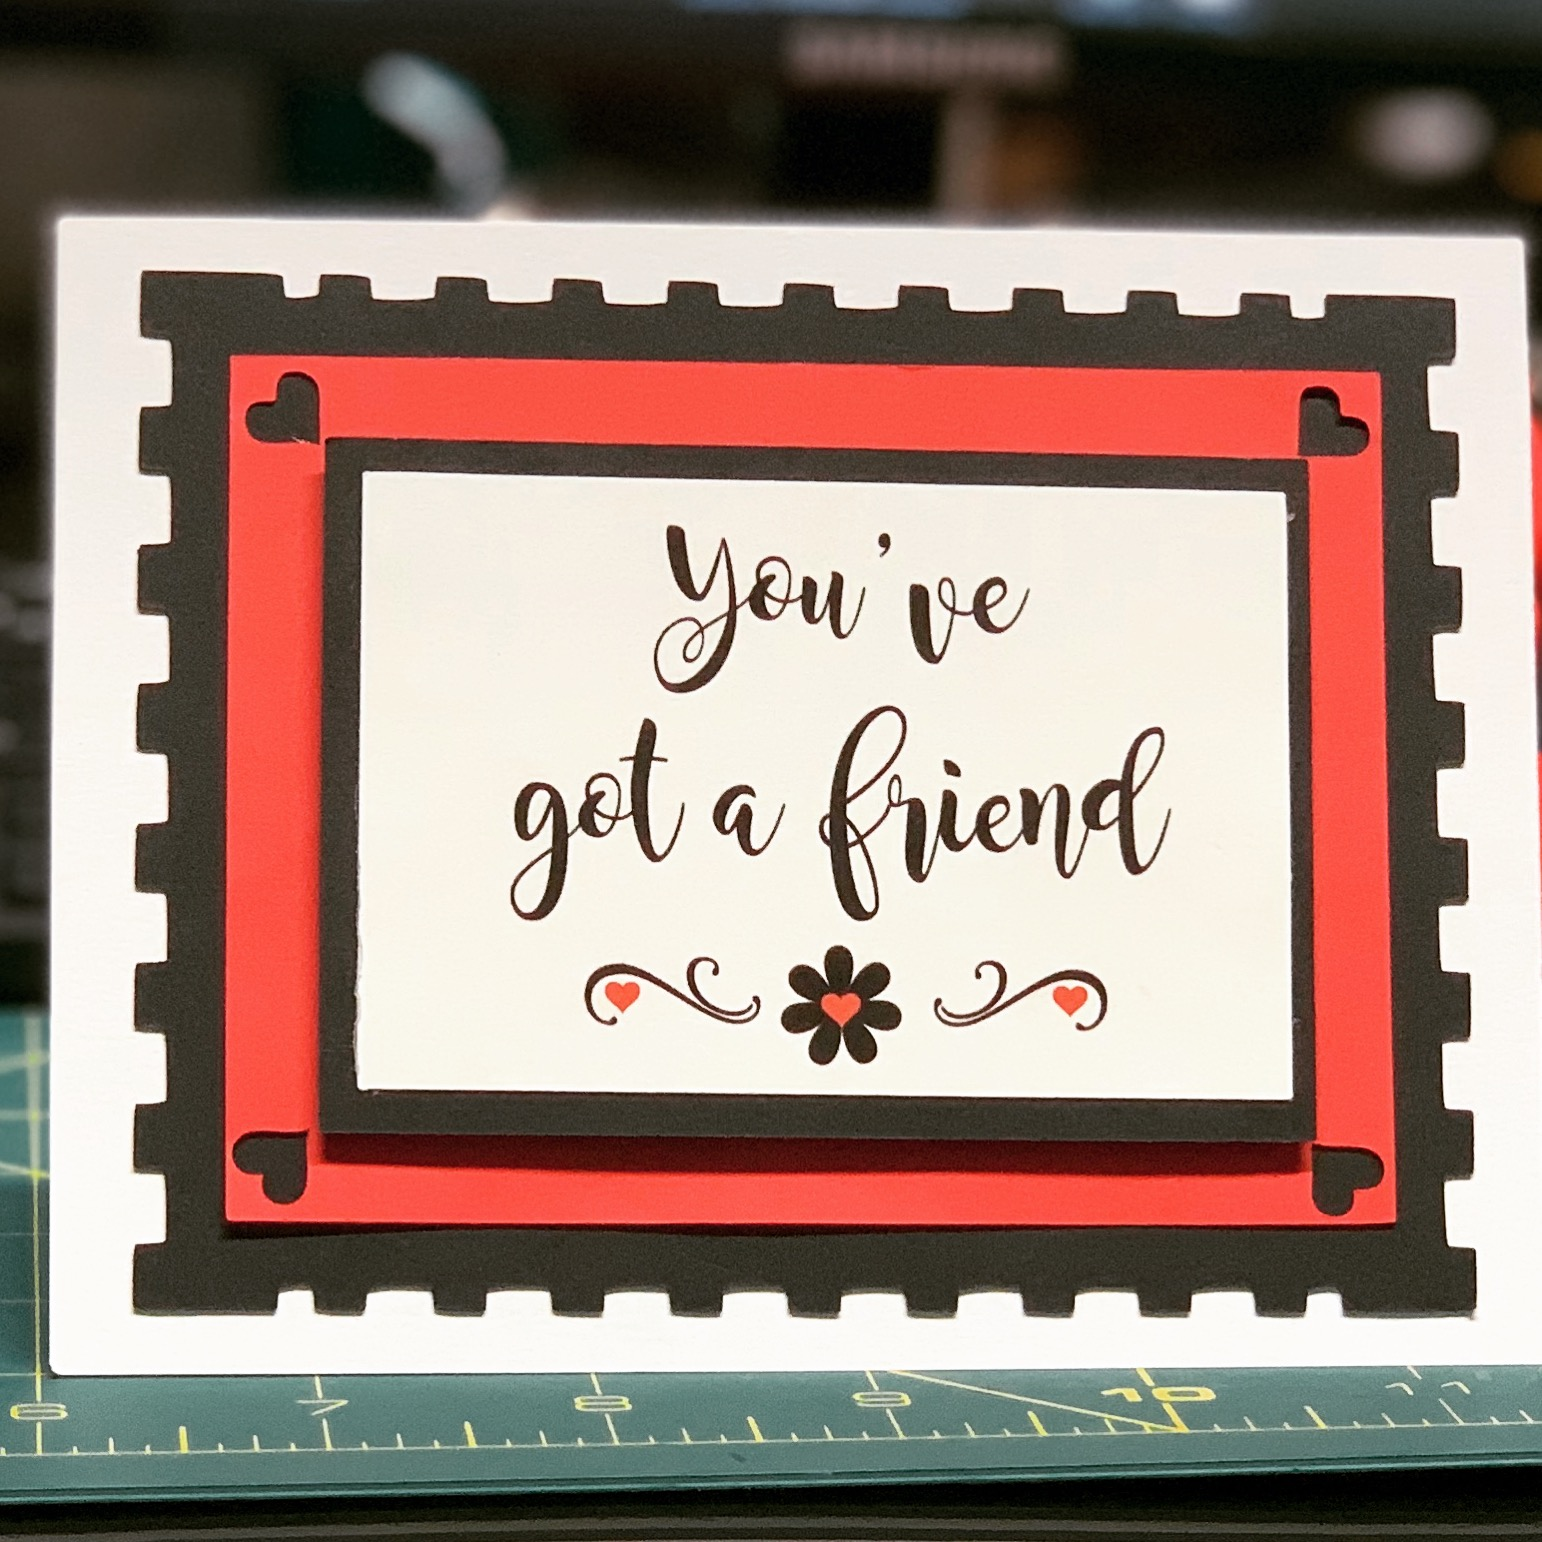 PattyAnne's You've Got a Friend card